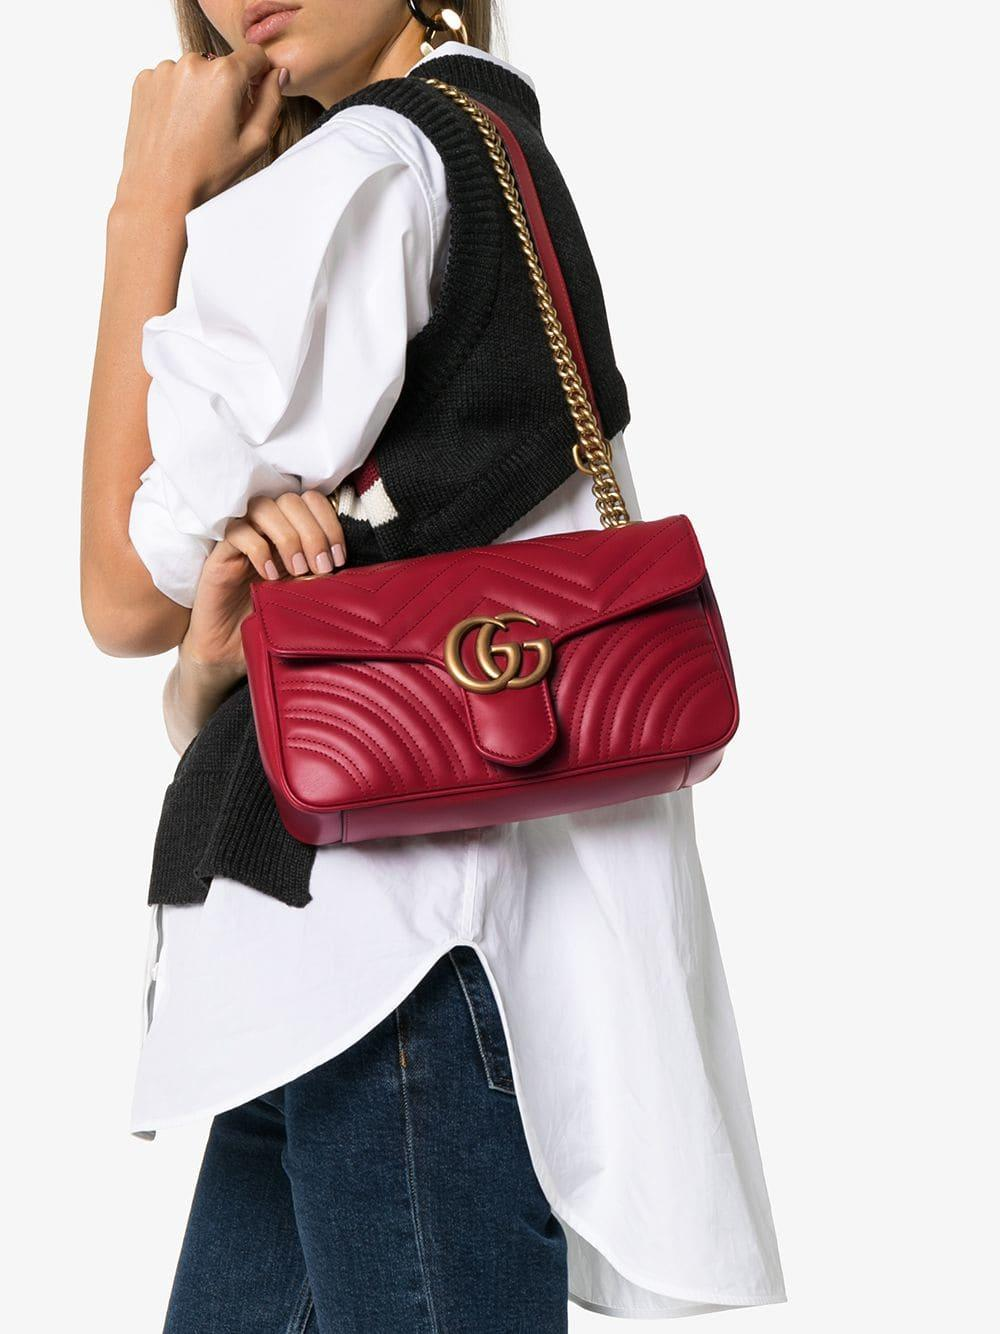 67822d4842c Lyst - Gucci Red GG Marmont Small Leather Matelassé Shoulder Bag in Red